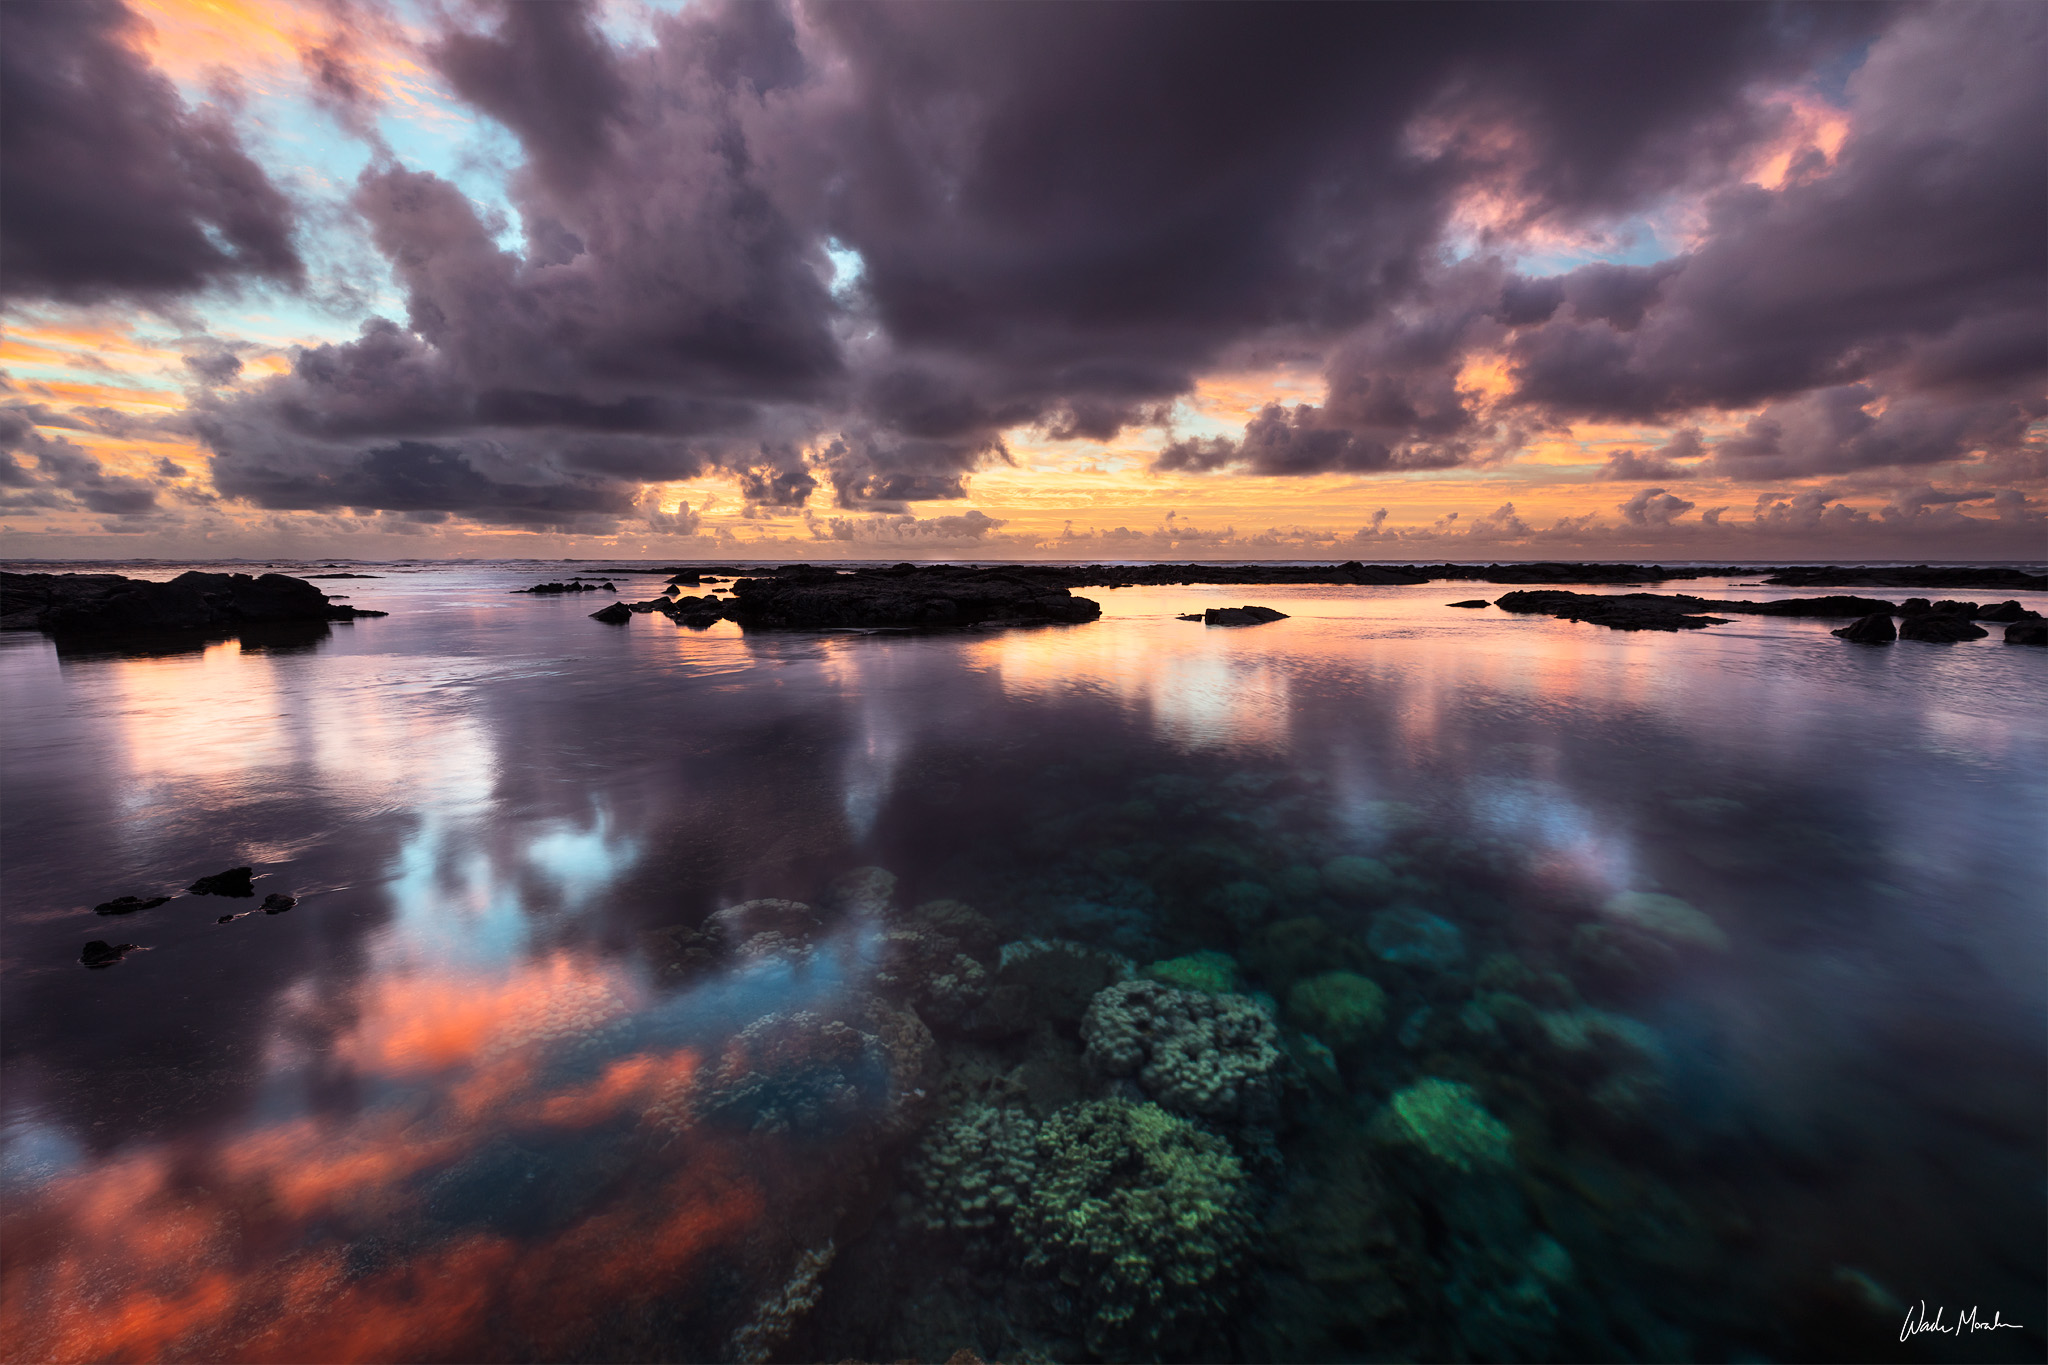 Kapoho Tide Pools was a little marine sanctuary located in the Puna District of the Big Island of Hawaii. It was known for its...